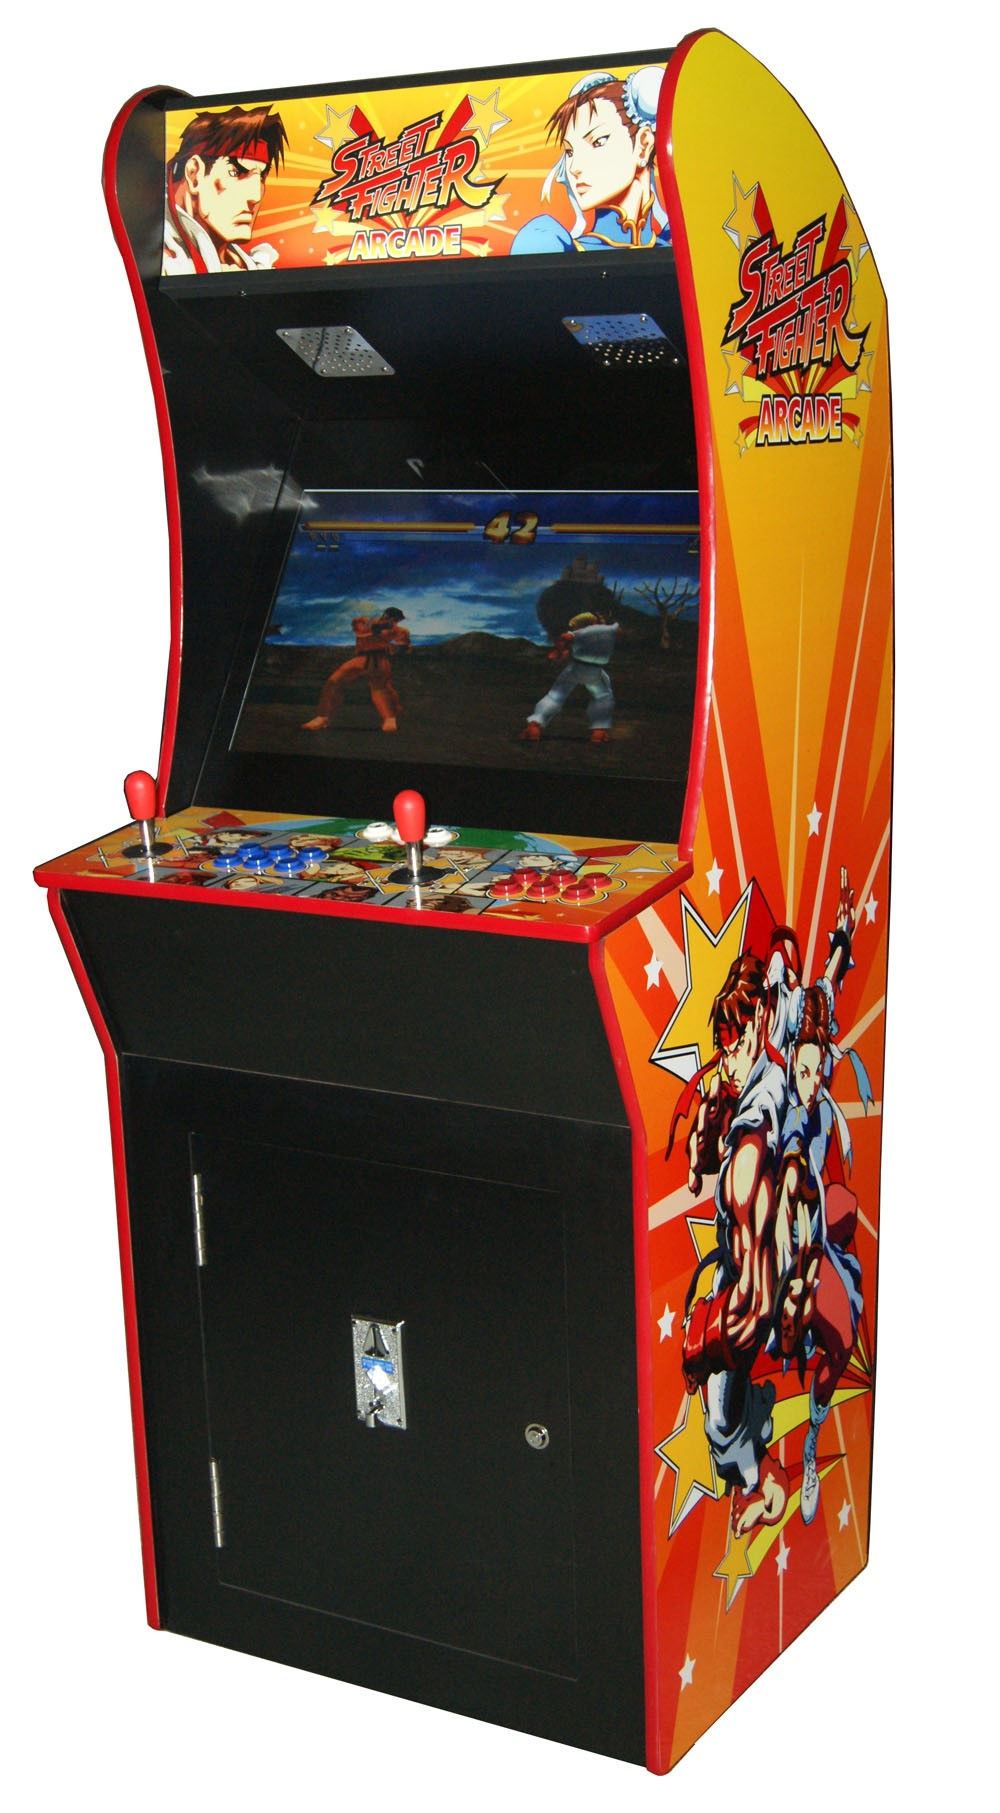 Arcade Rewind 3500 Game Upright Arcade Machine Street Fighter for sale Sydney